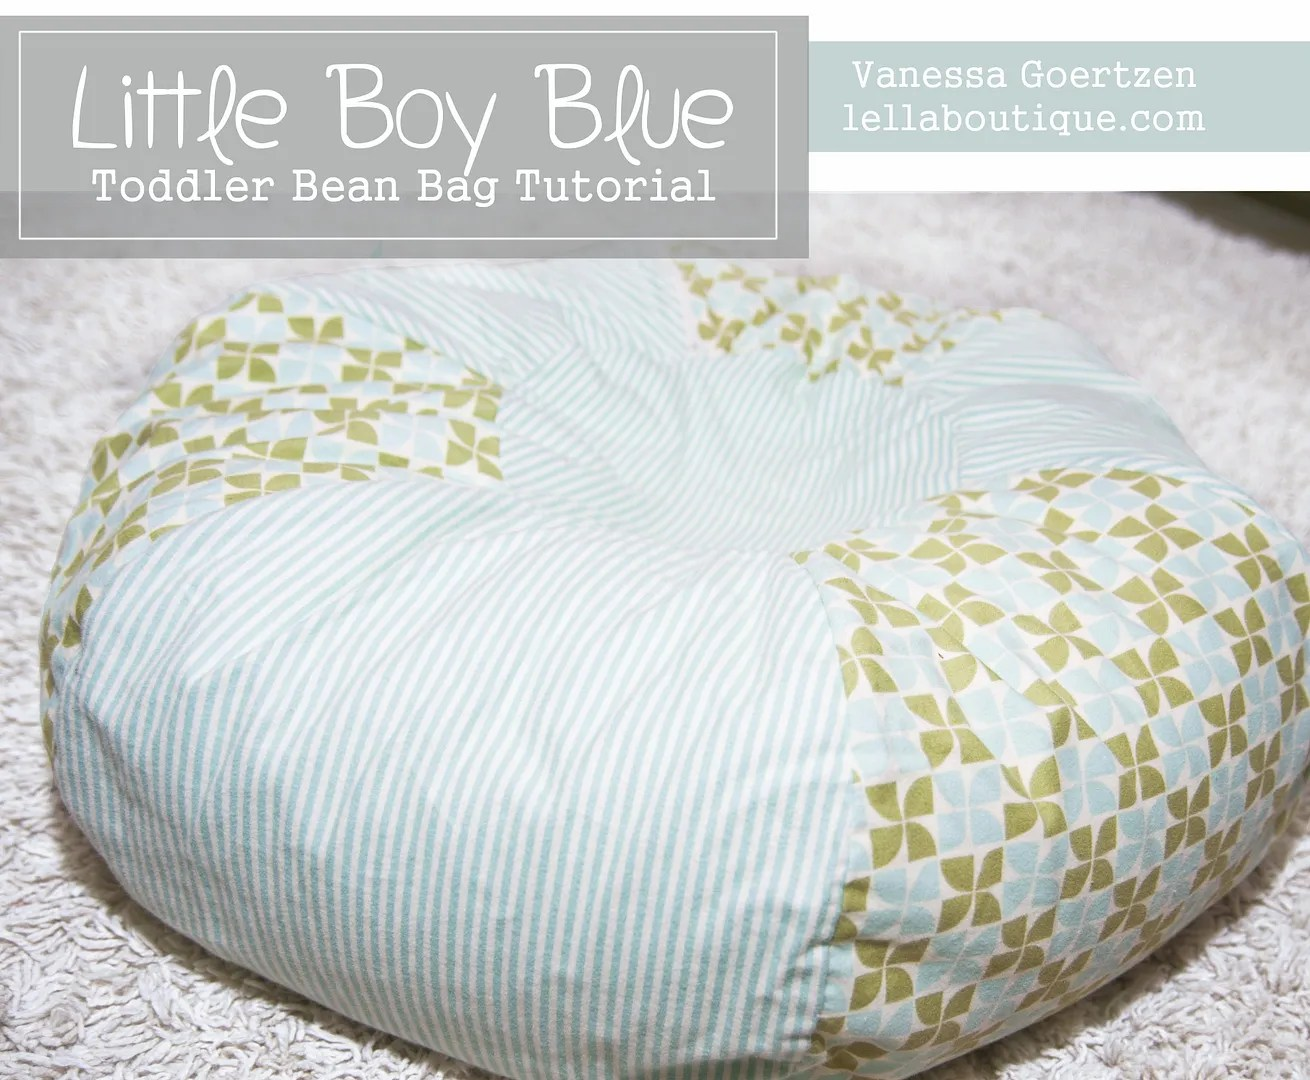 Toddler Bean Bag Pattern by Vanessa Goertzen